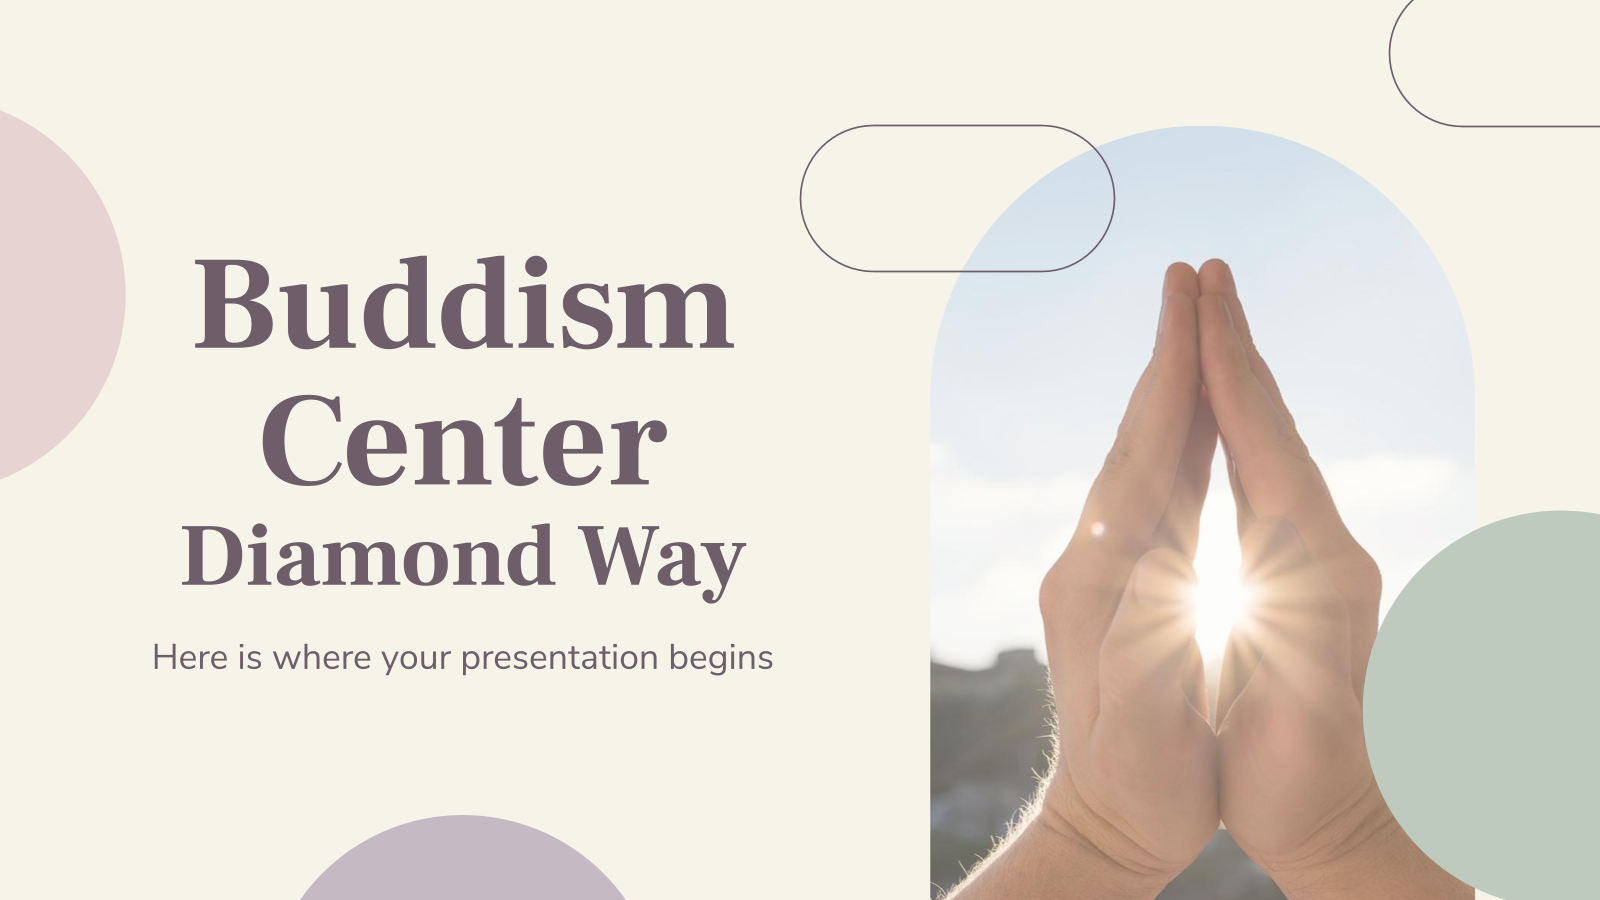 Buddhism Center: Diamond Way presentation template